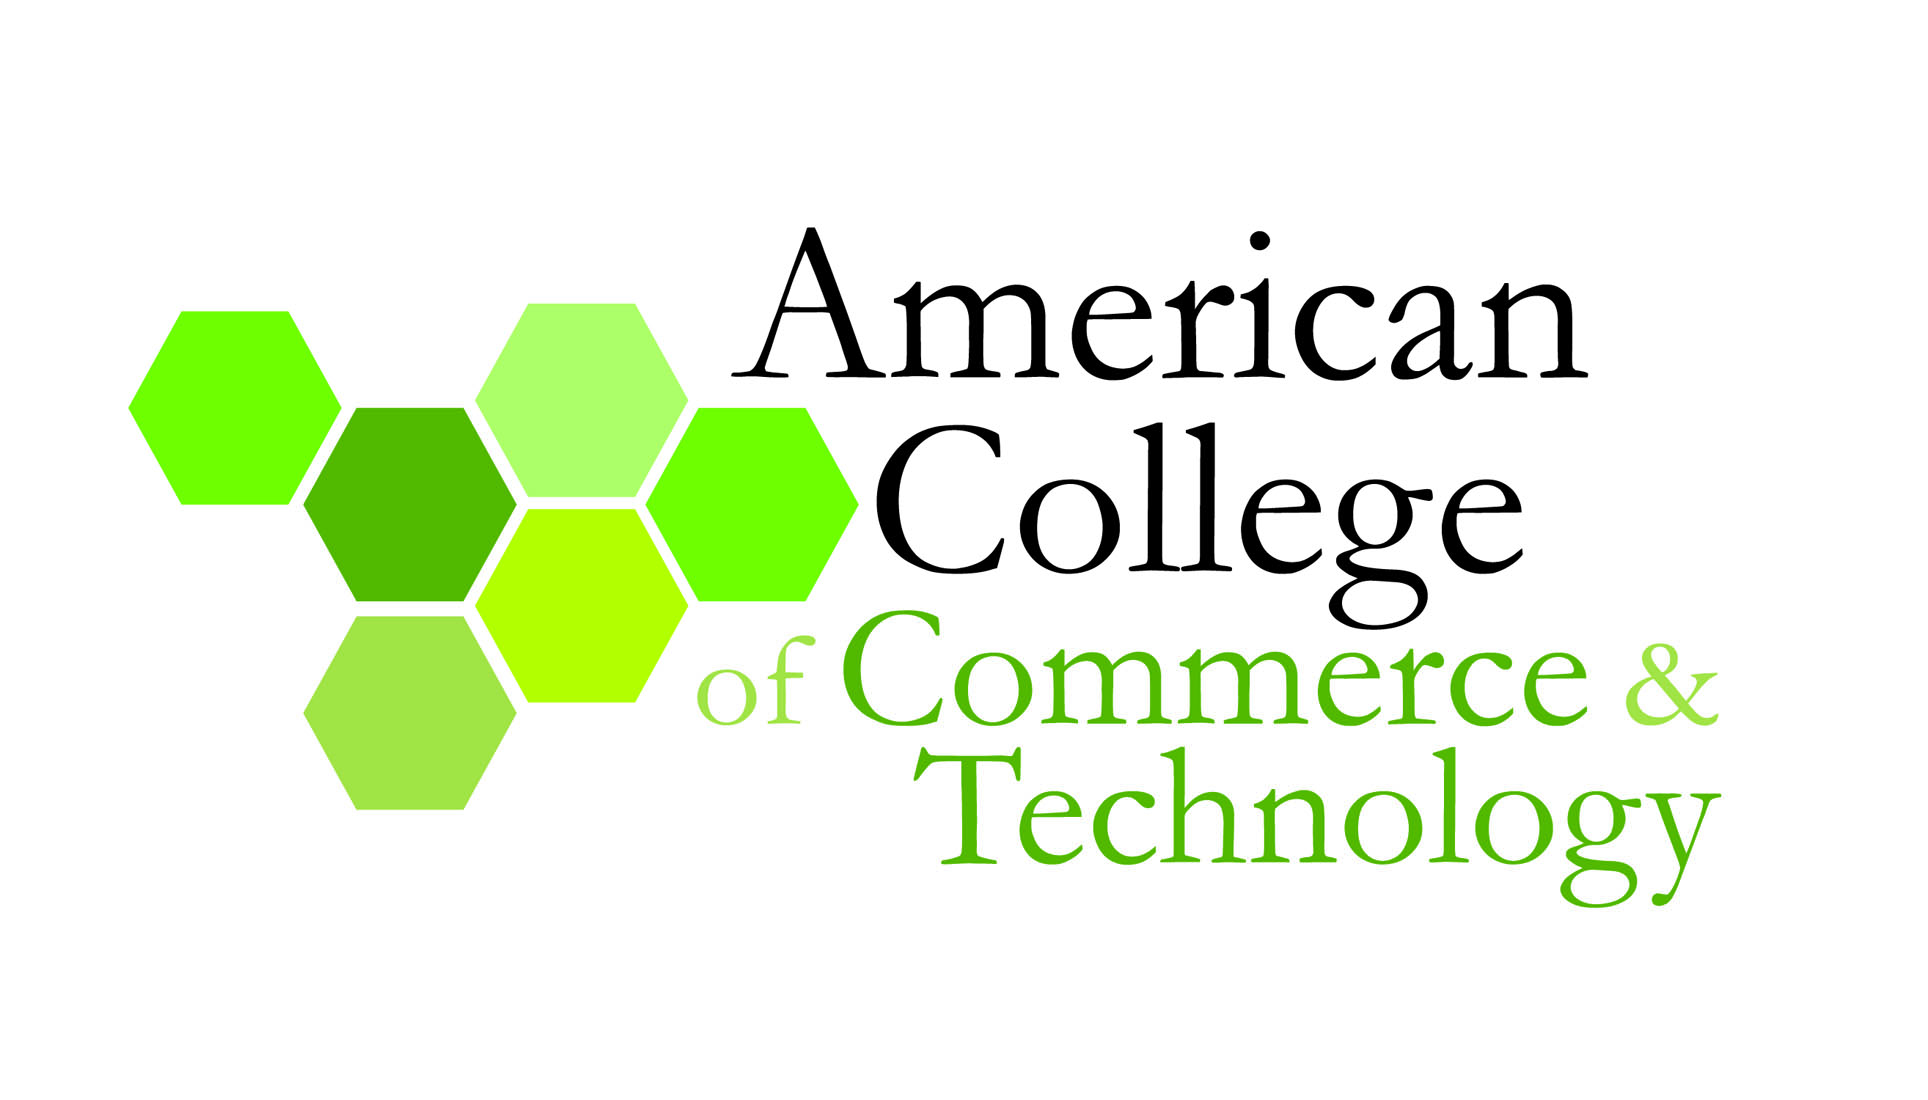 American College of Commerce & Technology